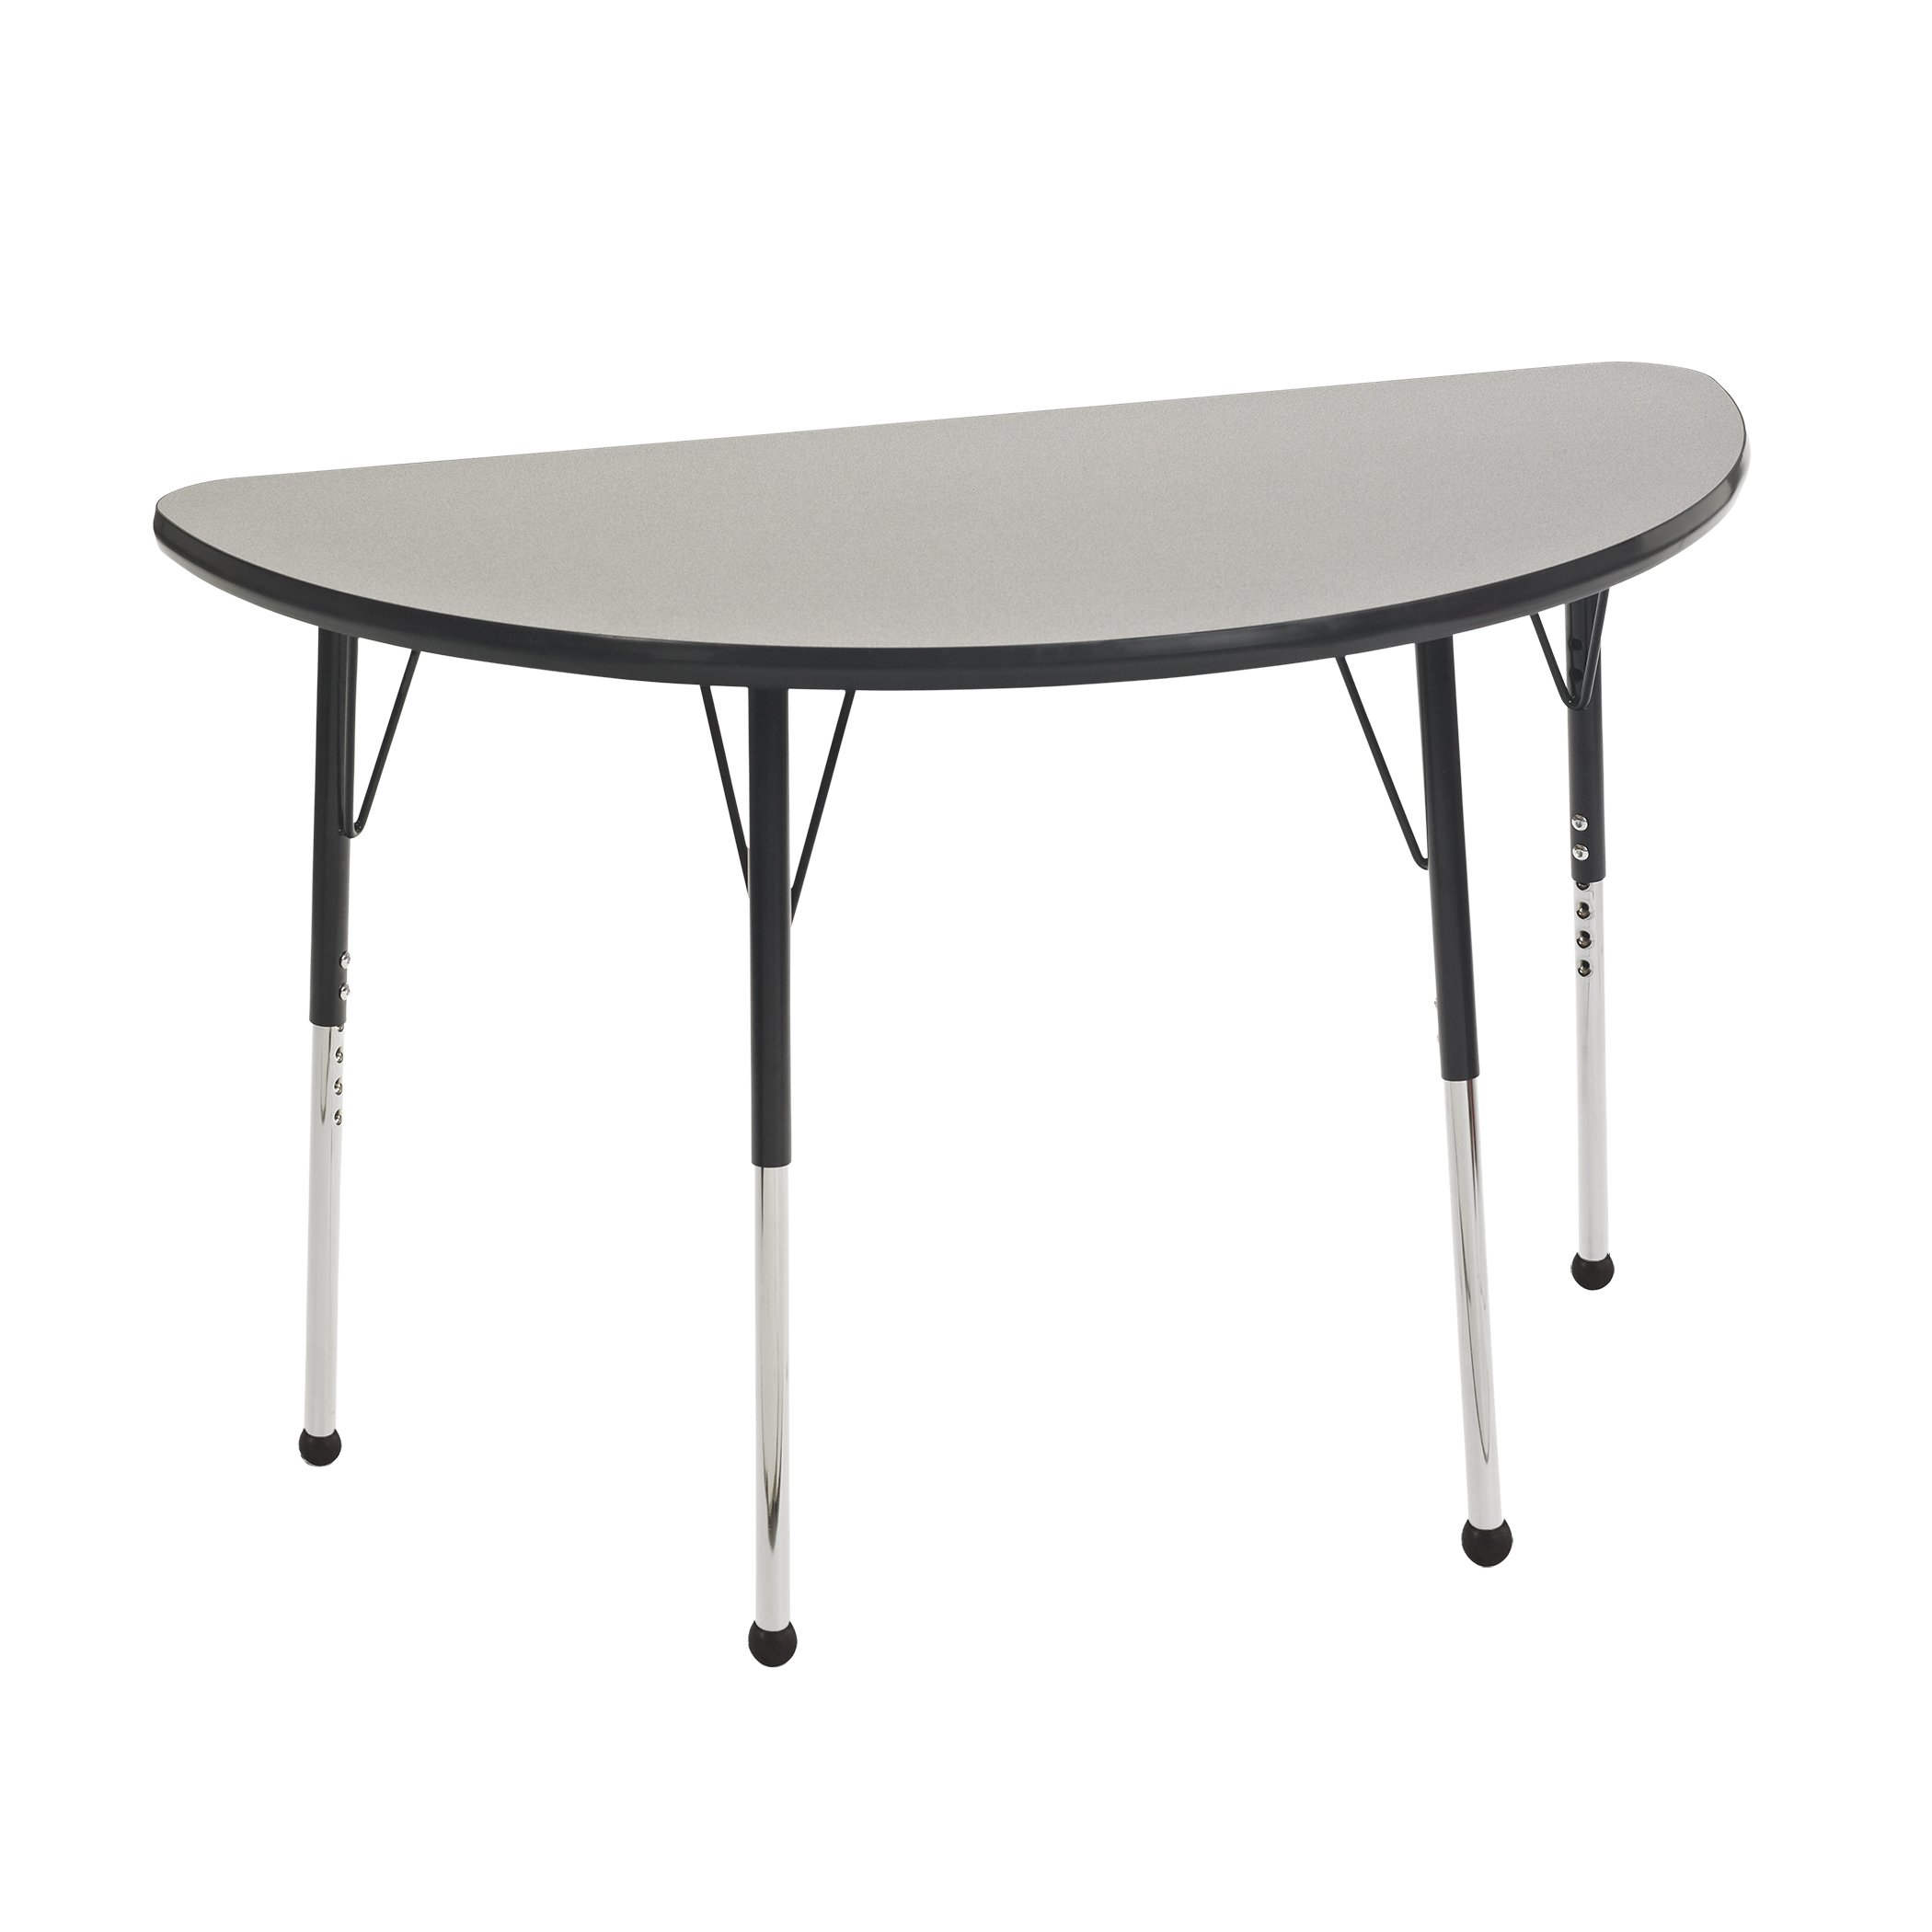 ECR4Kids Mesa Thermo-fused 24'' x 48'' Half Round School Activity Table, Standard Legs w/ Ball Glides, Adjustable Height 19-30 inch (Grey/Black)